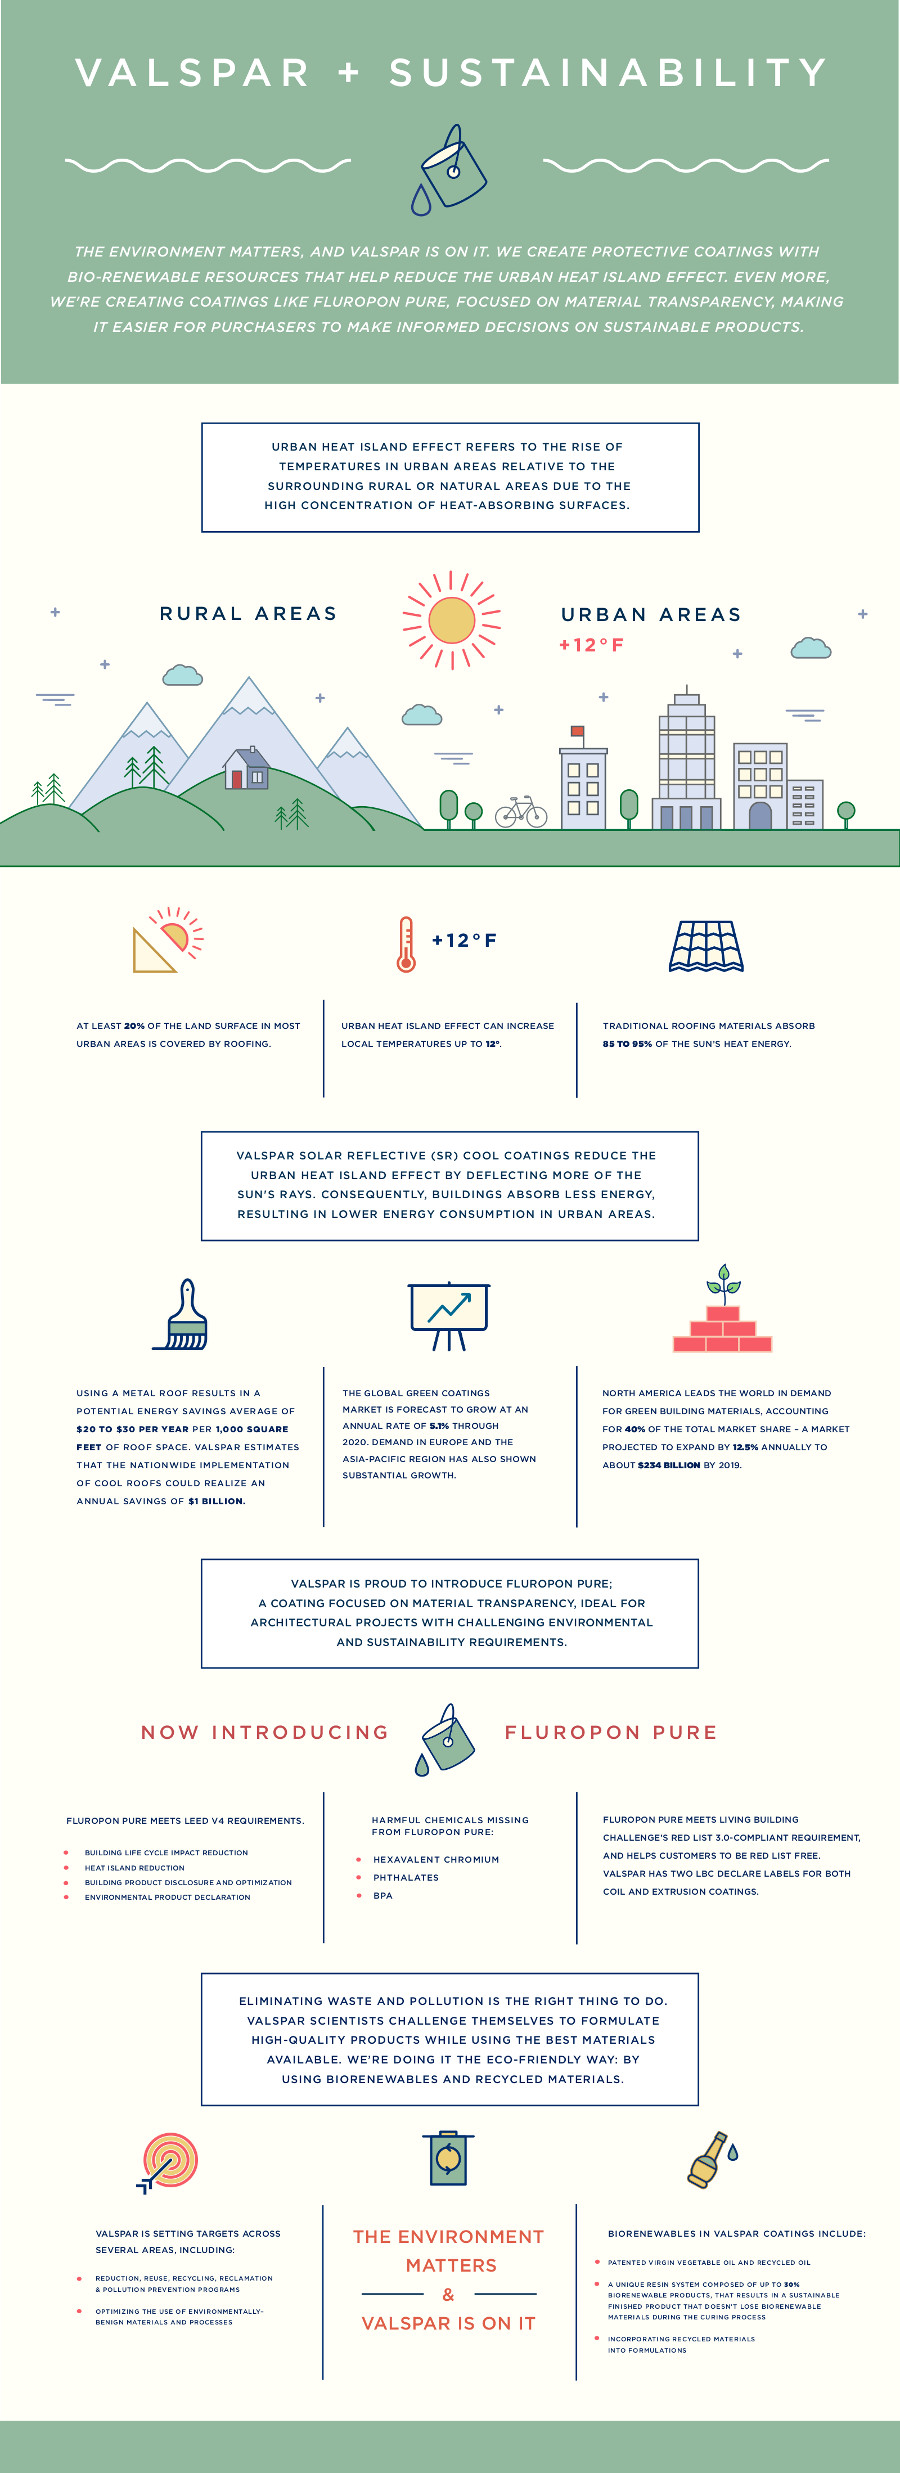 Infographic: Valspar & Sustainability